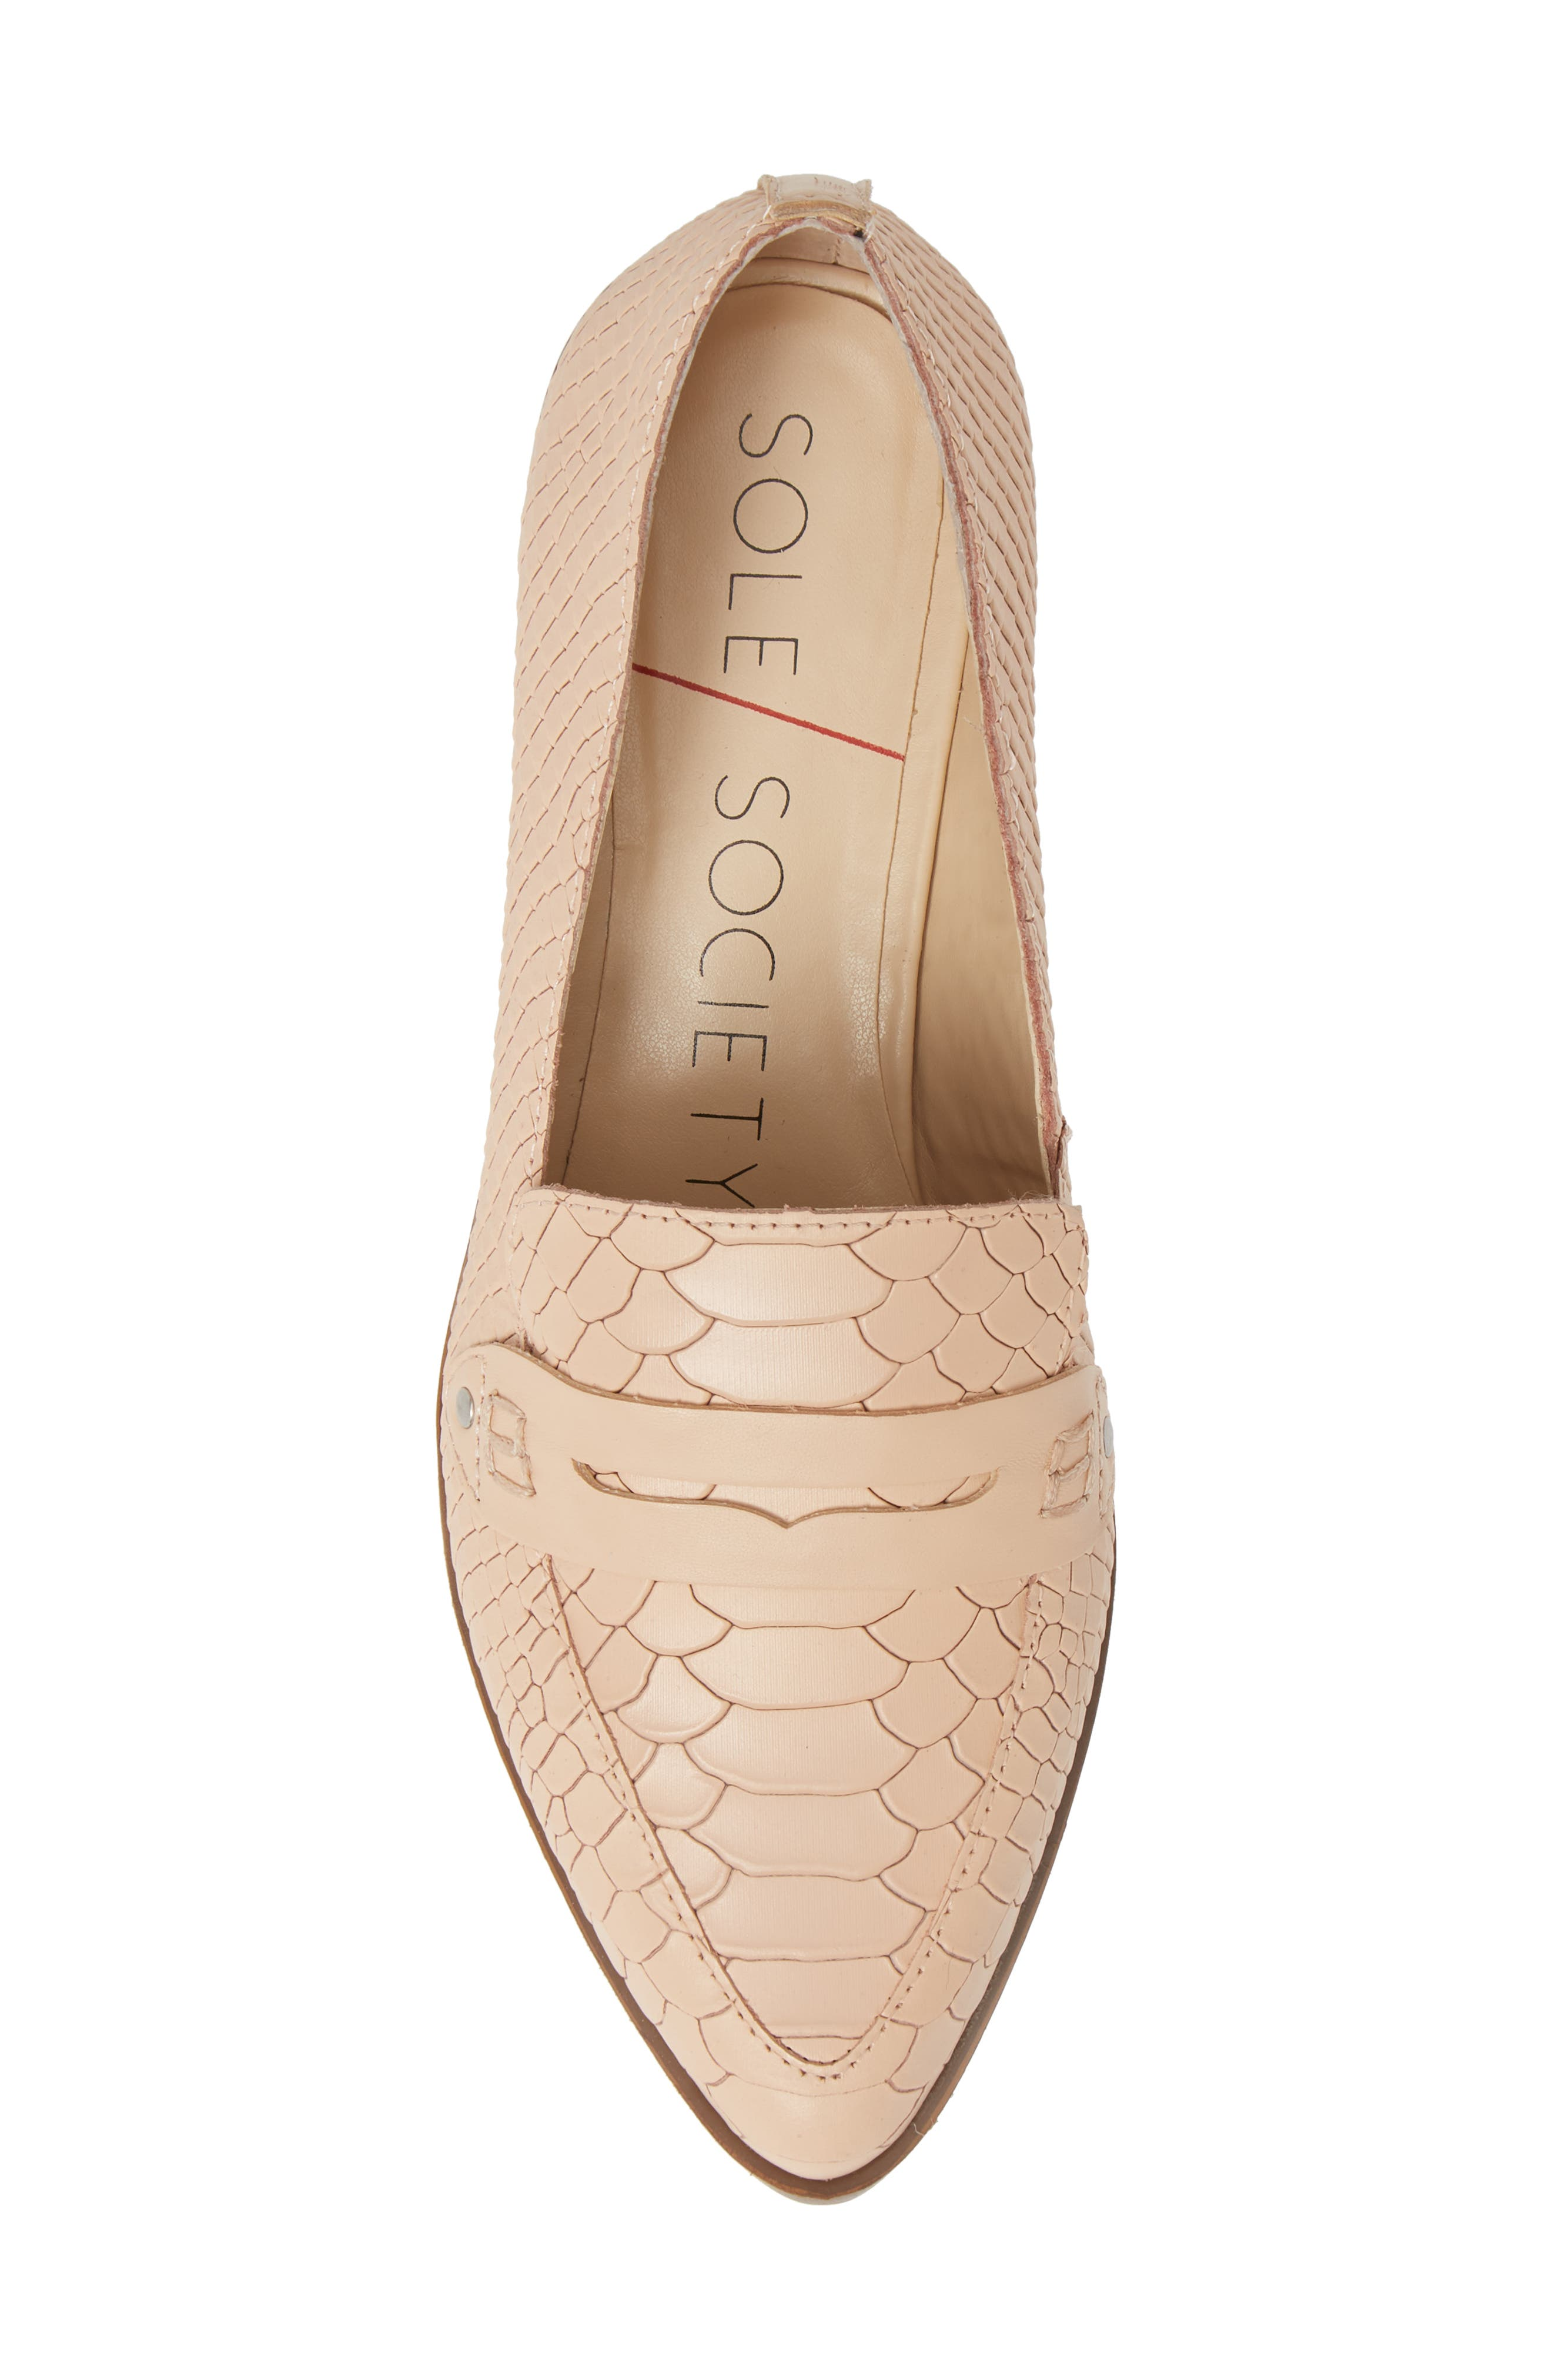 SOLE SOCIETY, Jessica Smoking Slipper, Alternate thumbnail 5, color, BISQUE LEATHER